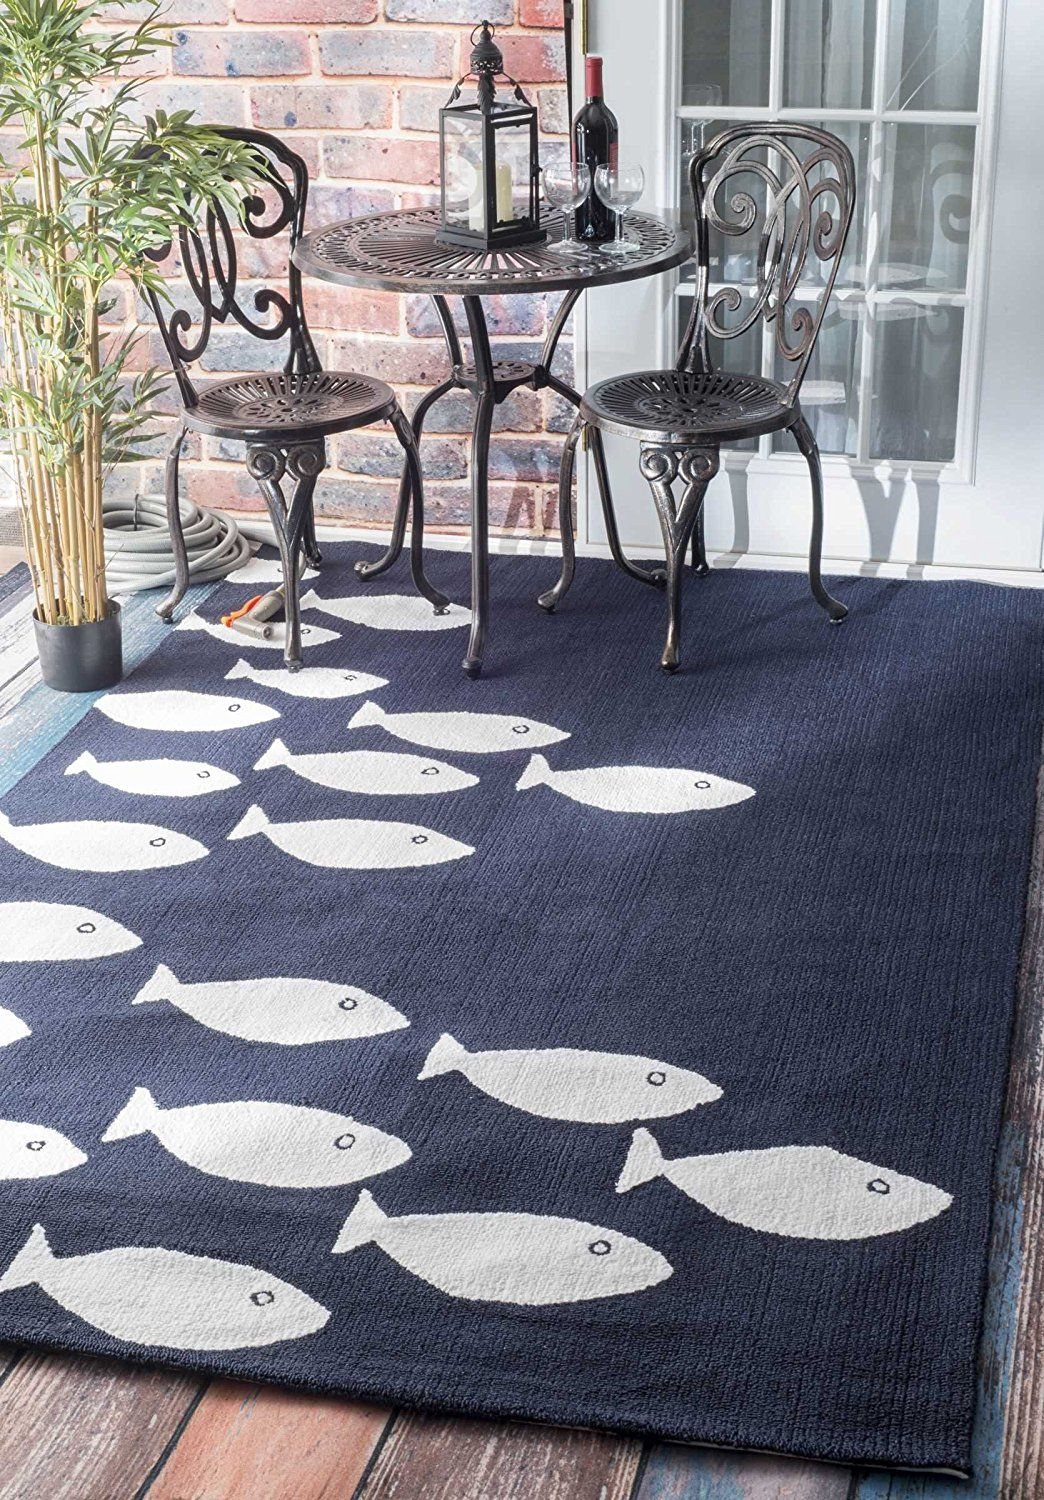 18 Beautiful Rugs As Gifts For Wife Will Make Her So Delighted Indoor Outdoor Area Rugs Indoor Outdoor Rugs Outdoor Area Rugs